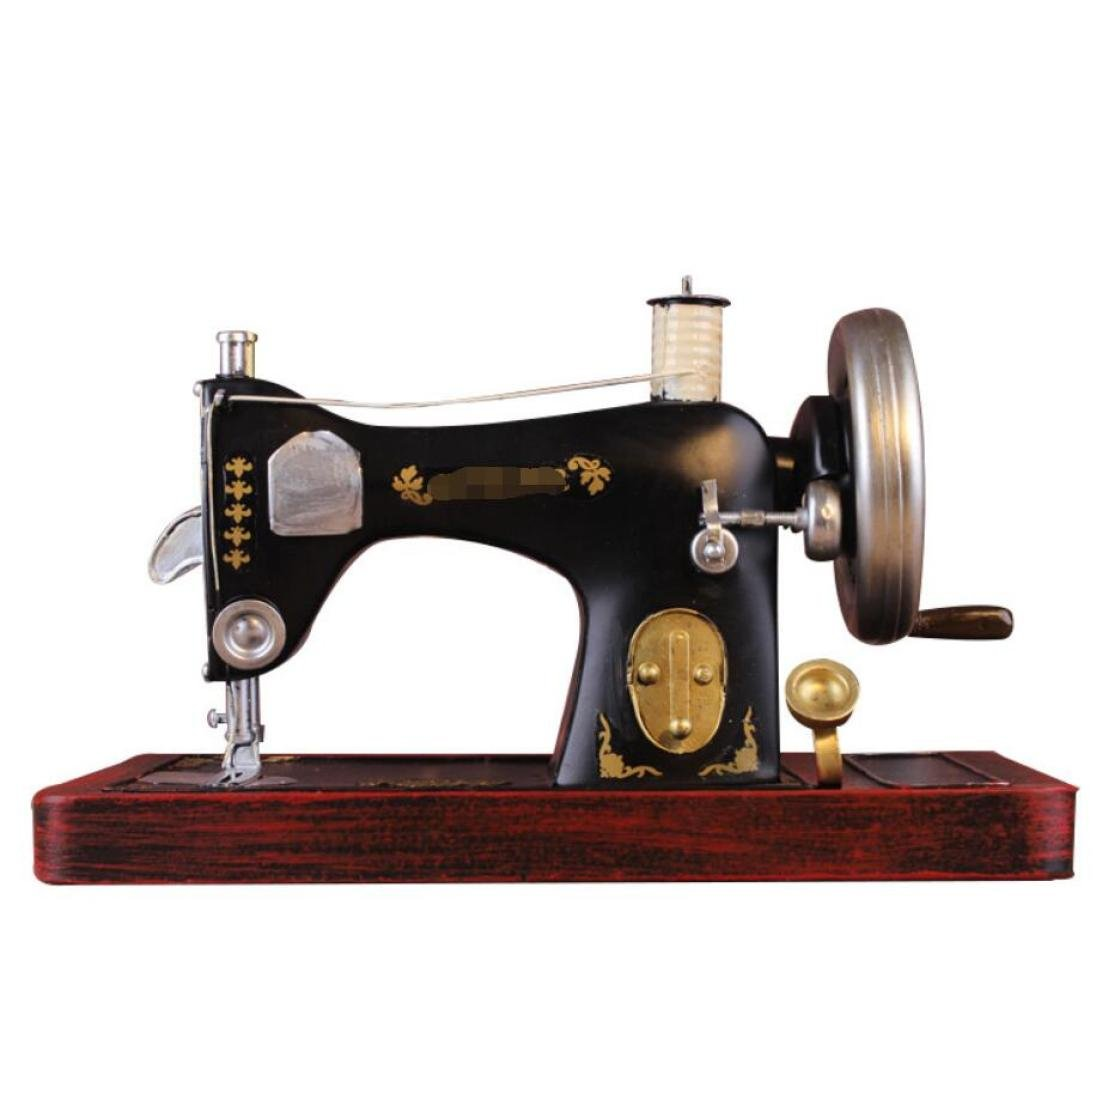 GL&G Retro Iron art large Sewing machine model clothing store Window decoration Home Décor Accents Collectible Tabletop Scenes Ornaments High-end gift,301418cm